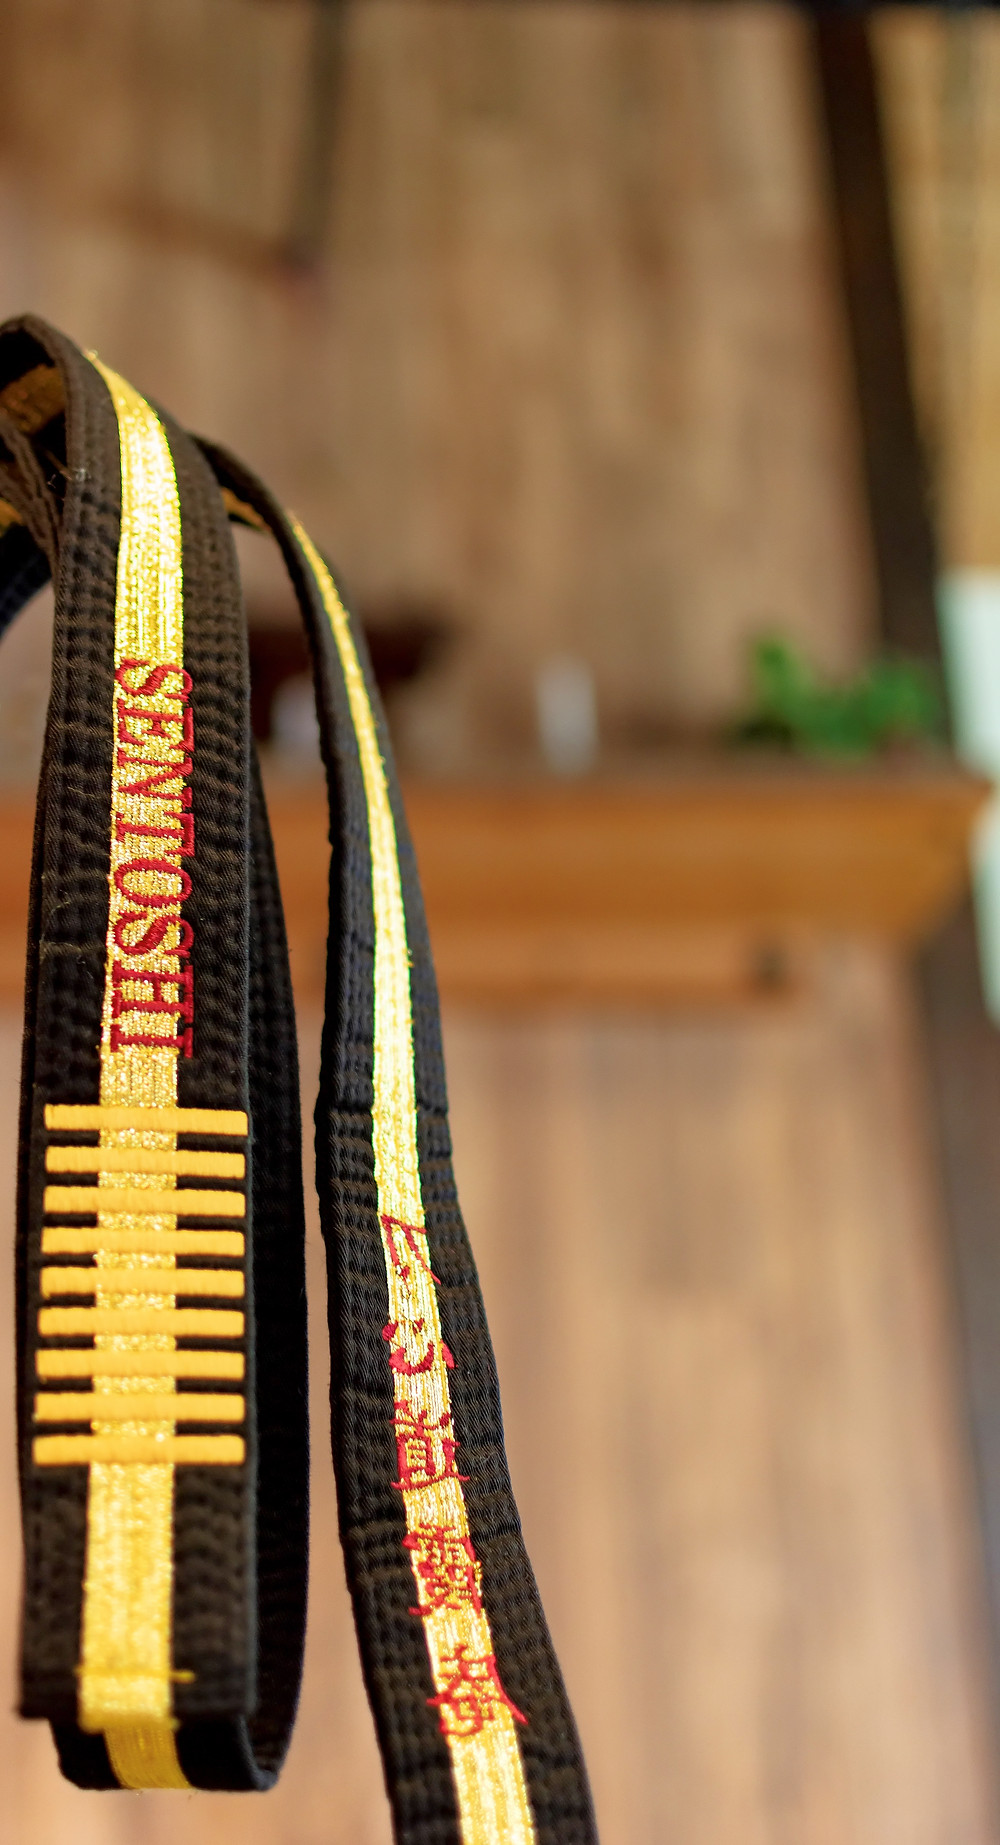 Master Mark Sentoshi Russo's 9th Degree Black Belt - The only one of it's kind in To-Shin Do.